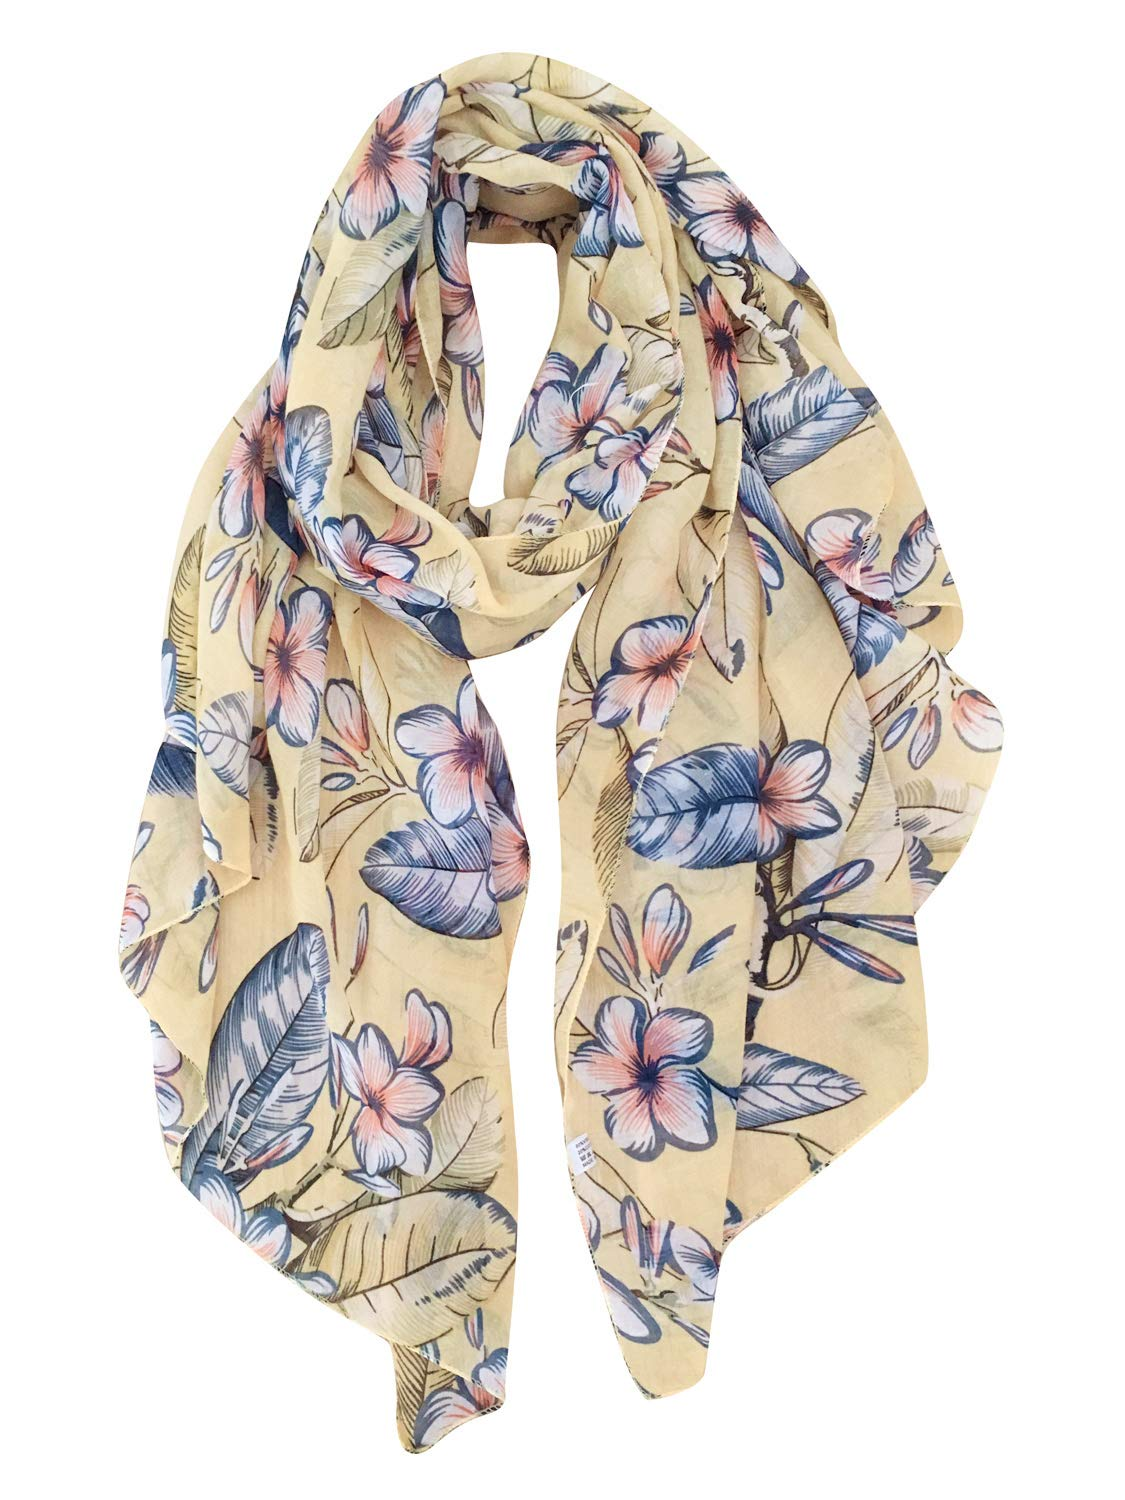 GERINLY Scarves for Women Florals Print Long Head Wraps Summer Thin Scarf (Yellow)